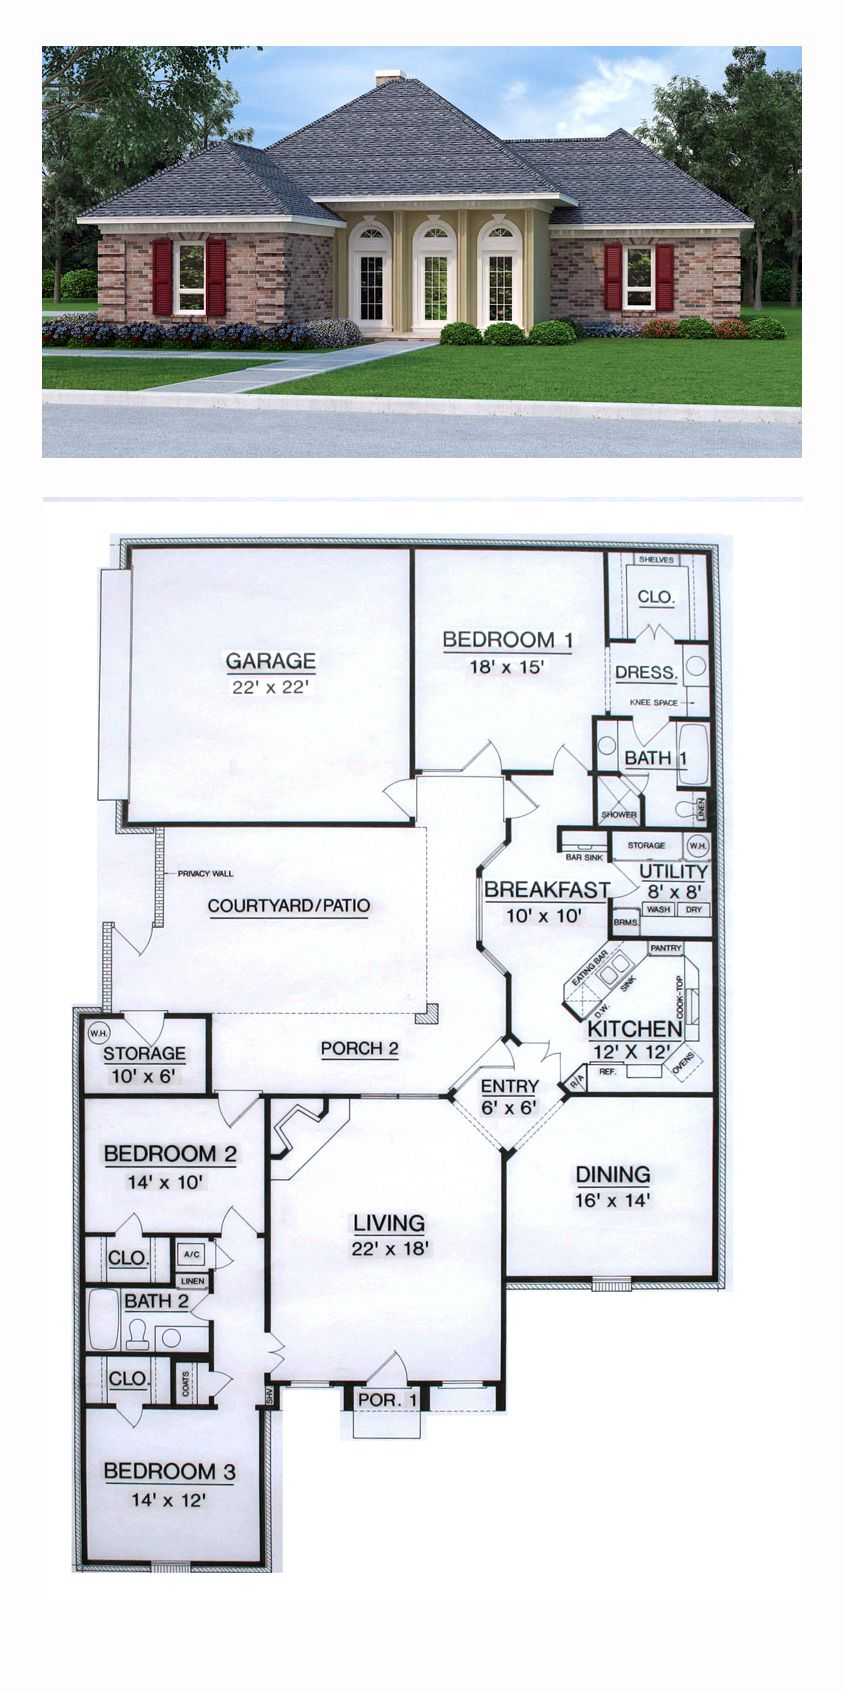 House Plan 76909 With 3 Bed 2 Bath 2 Car Garage Courtyard House Plans House Plans Courtyard House